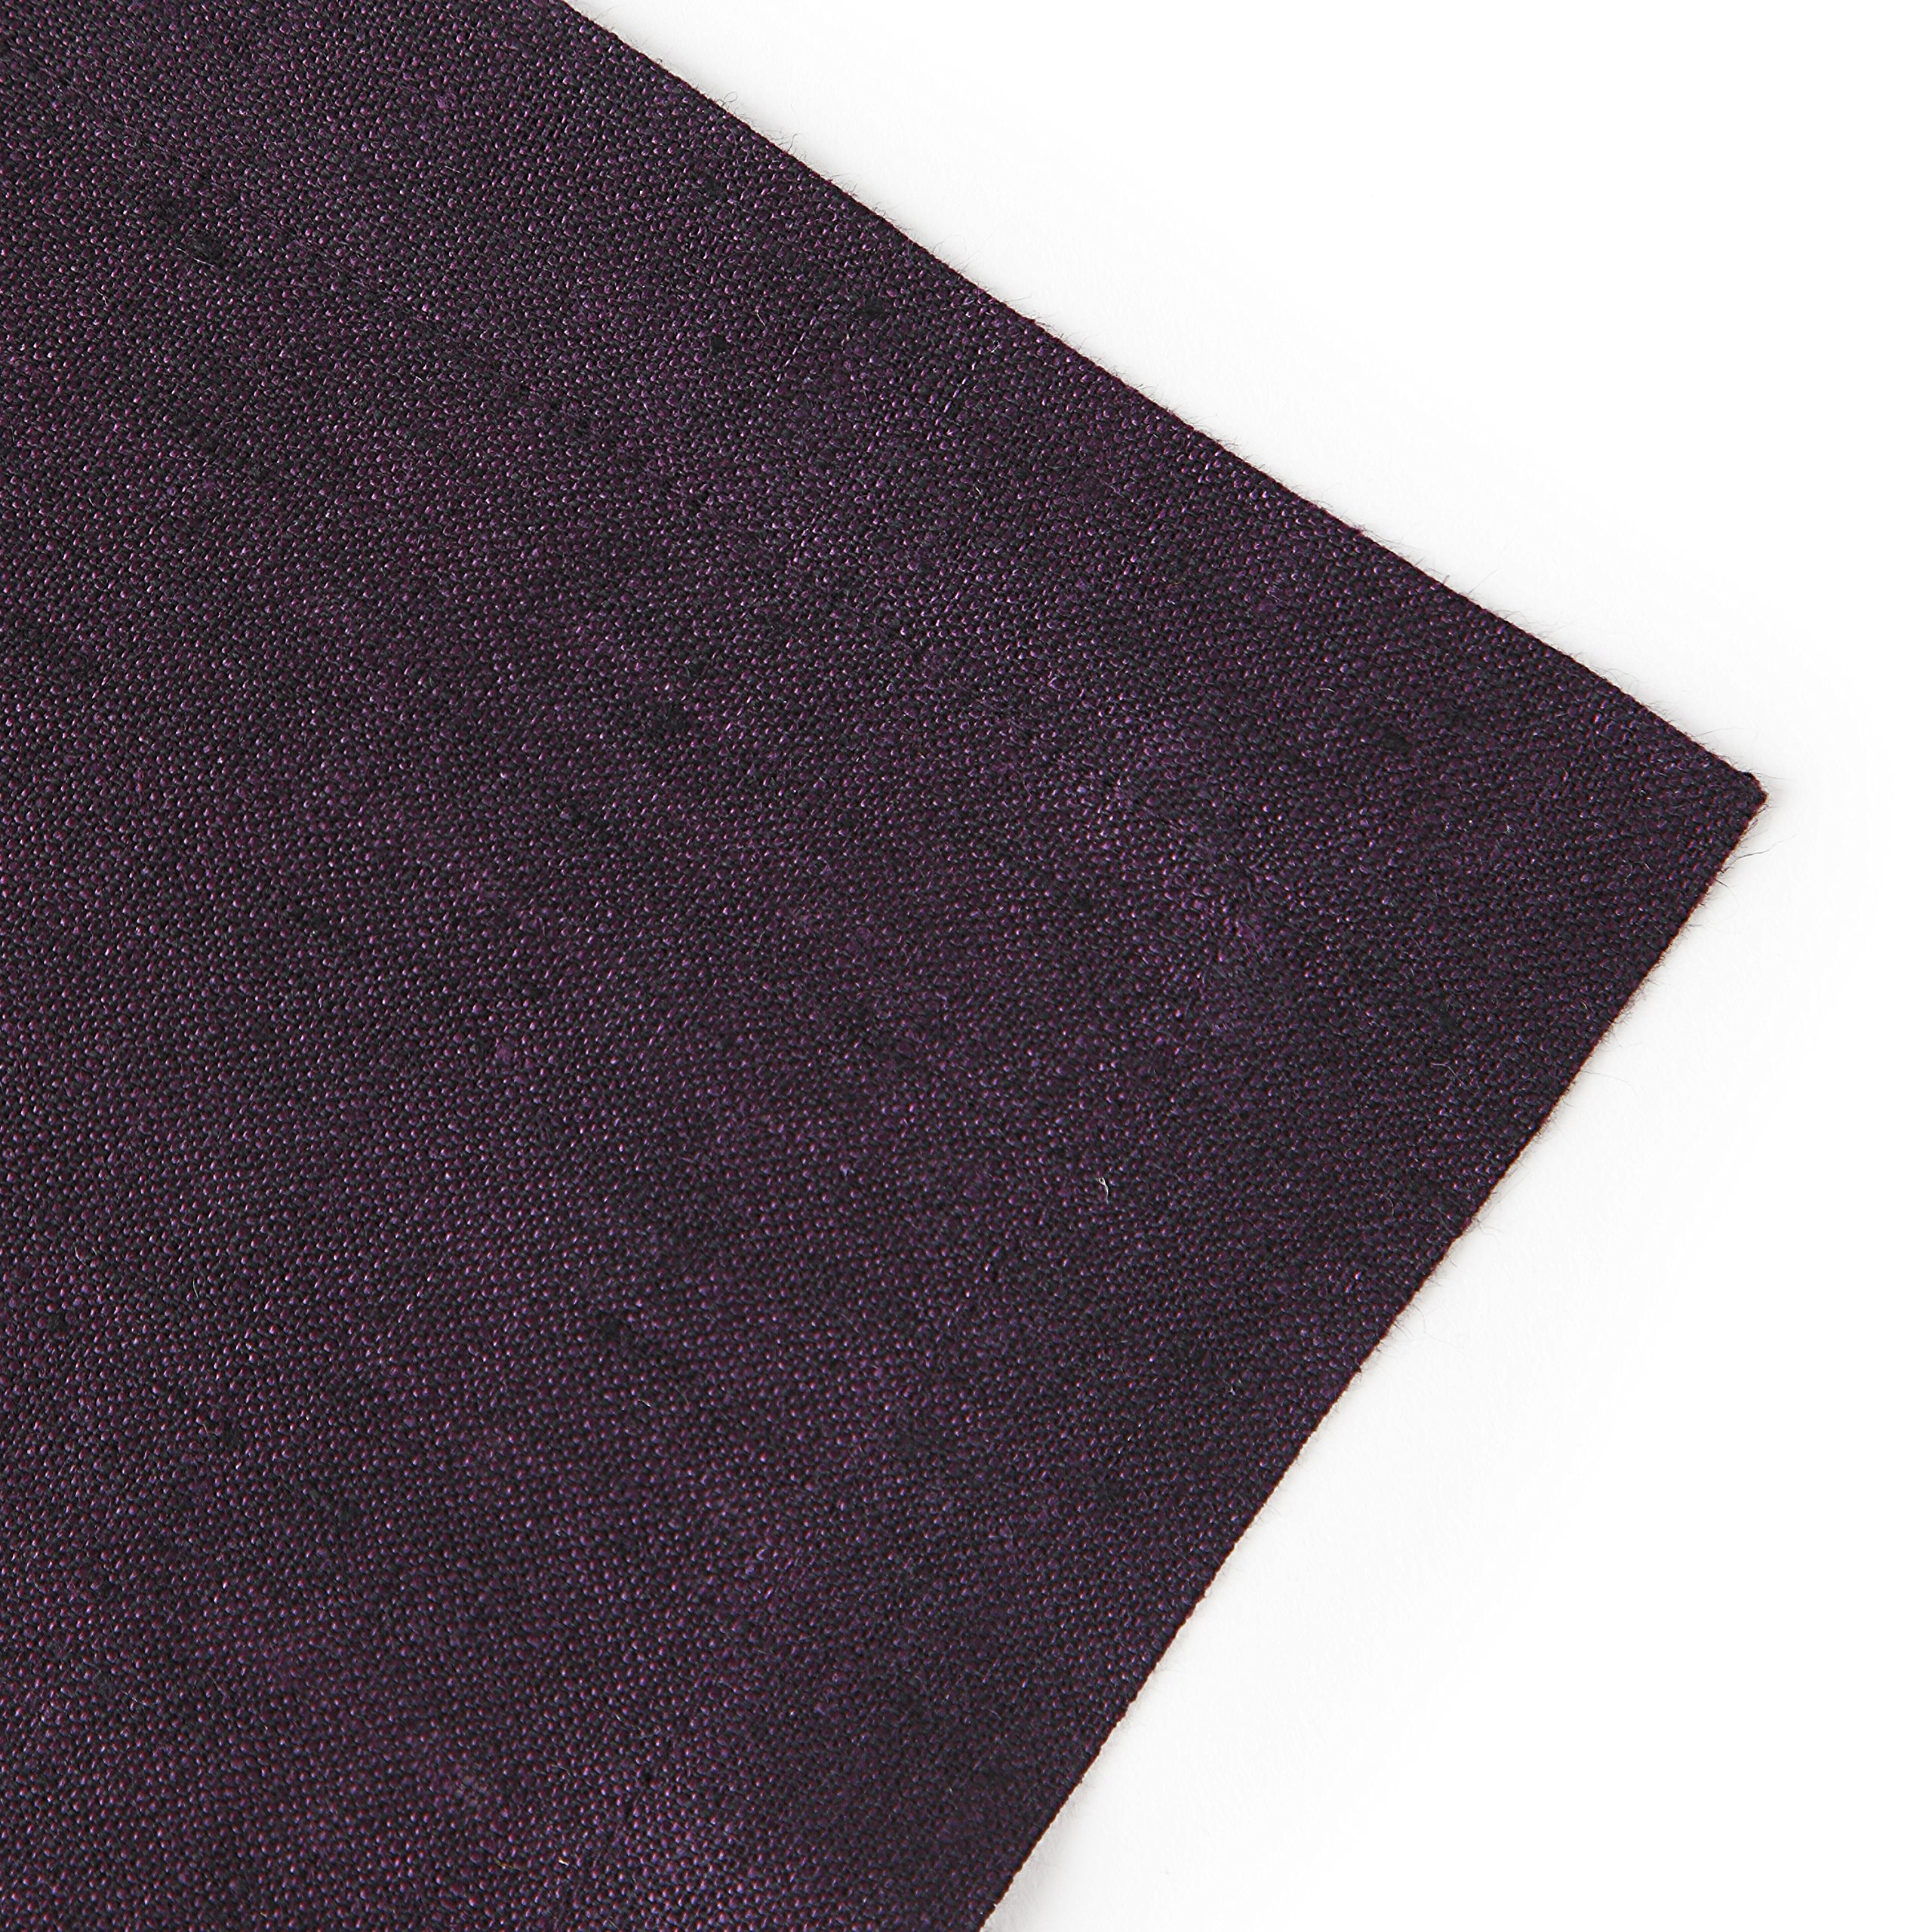 Solino Home 100% Pure Linen Table Runner Athena, Natural Fabric Handcrafted Runner, Purple 14 x 36 Inch by Solino Home (Image #5)